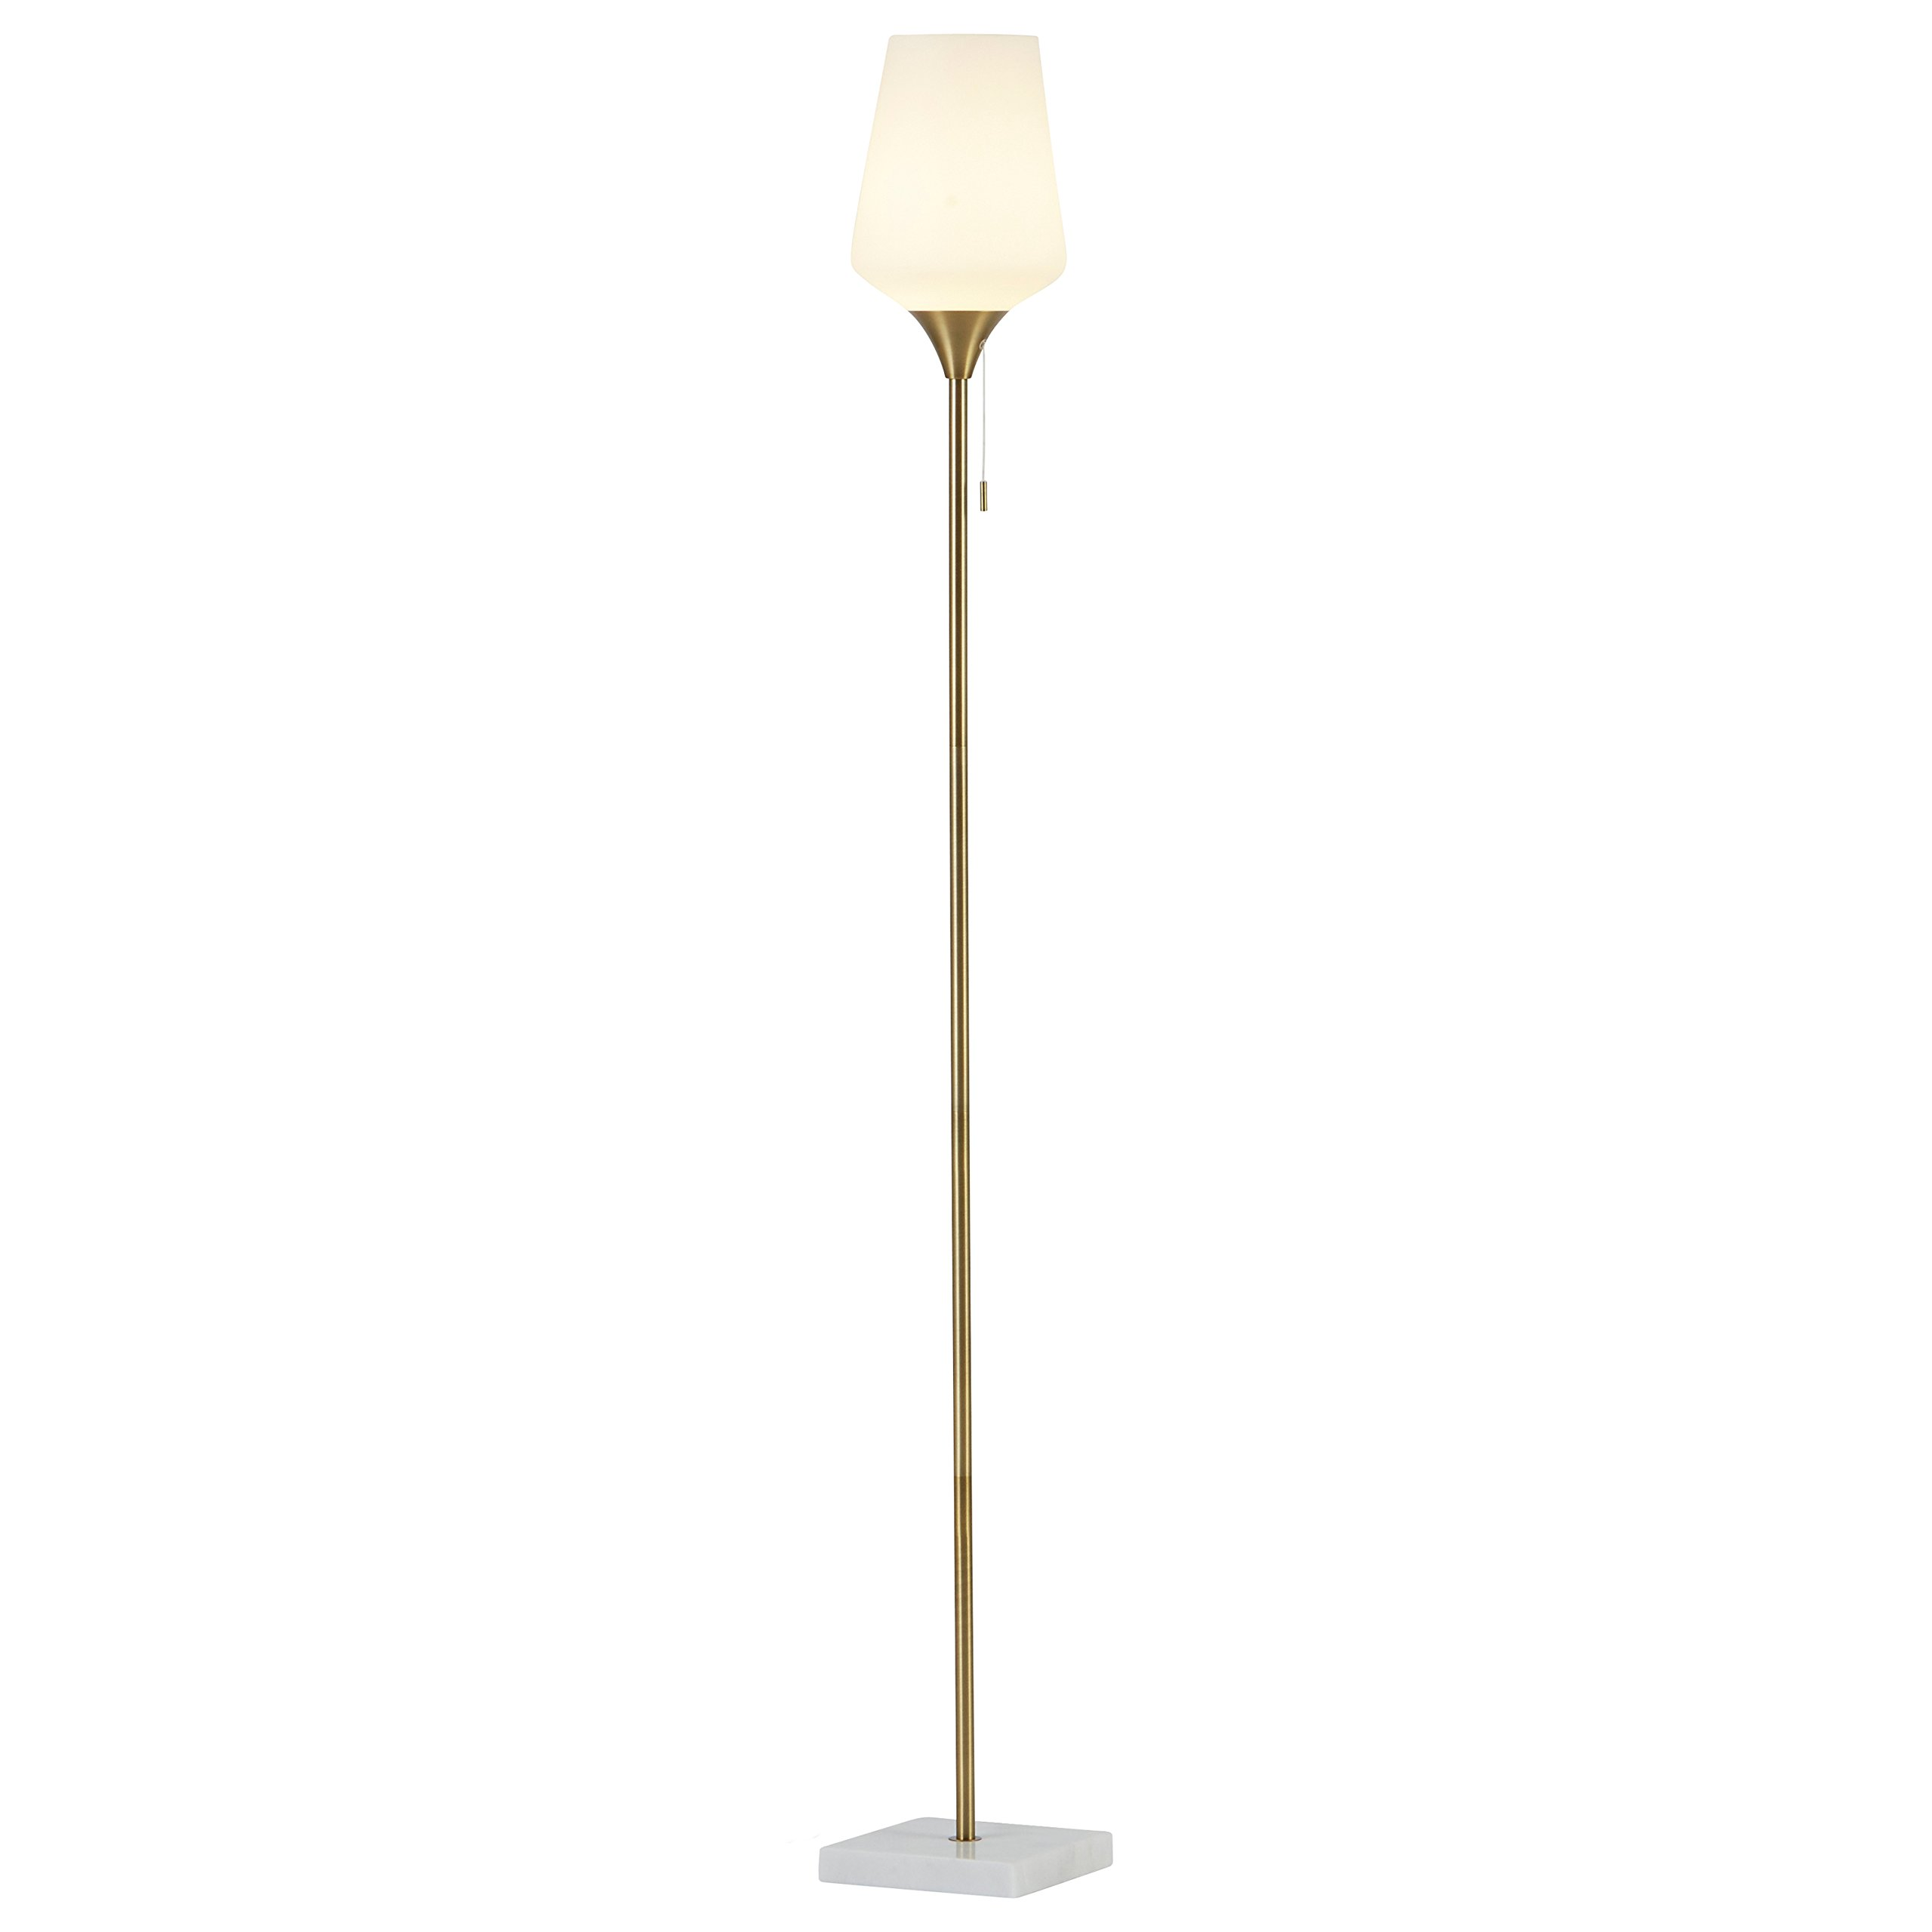 Rivet Harper Mid-Century Marble and Brass Floor Lamp, 71''H, With Bulb by Rivet